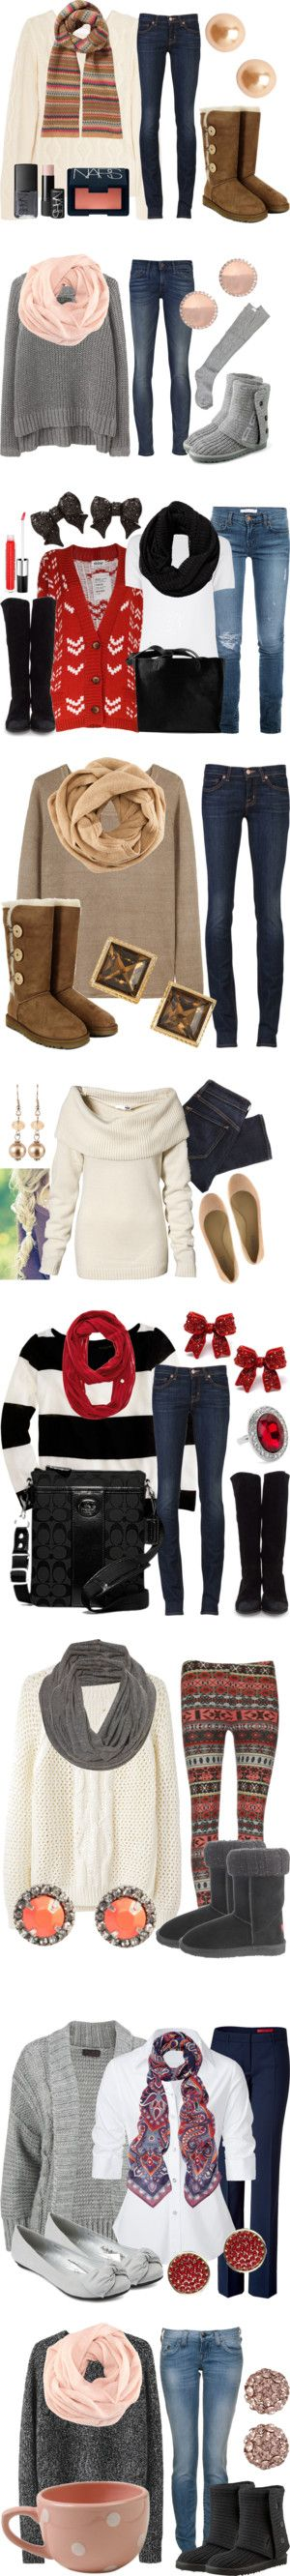 Winter Wardrobe... love the sweaters!